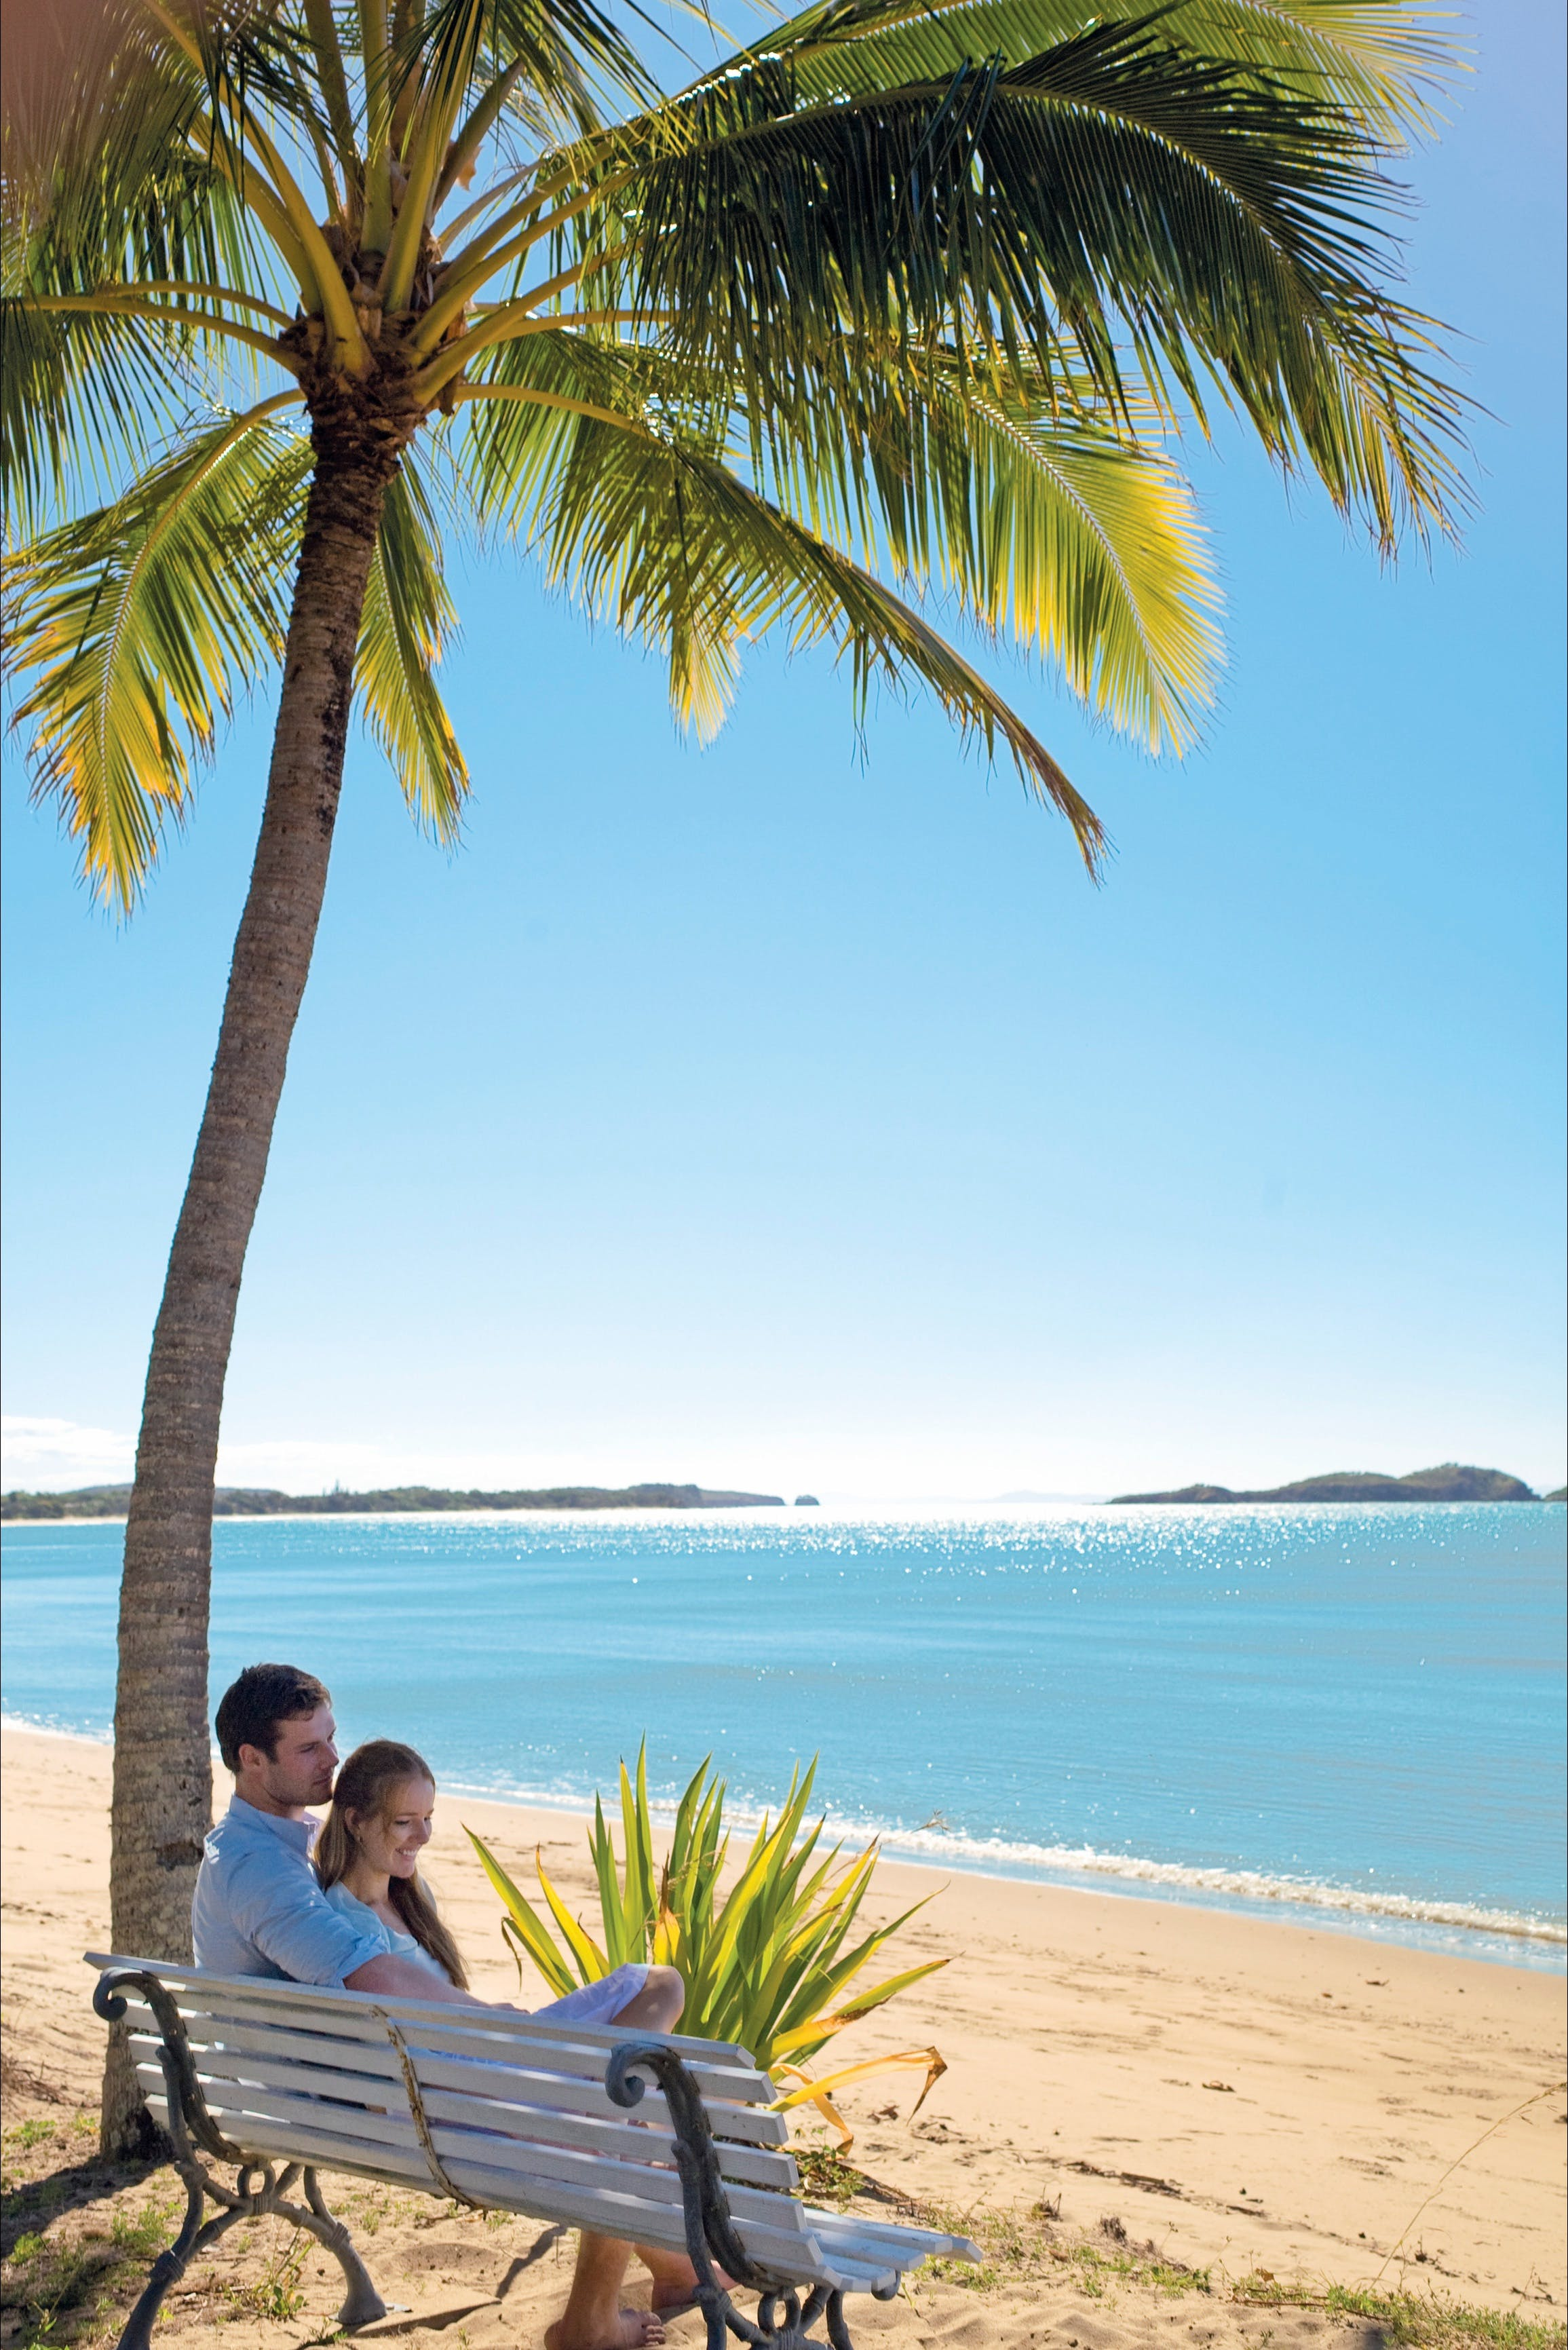 Seaforth - Townsville Tourism